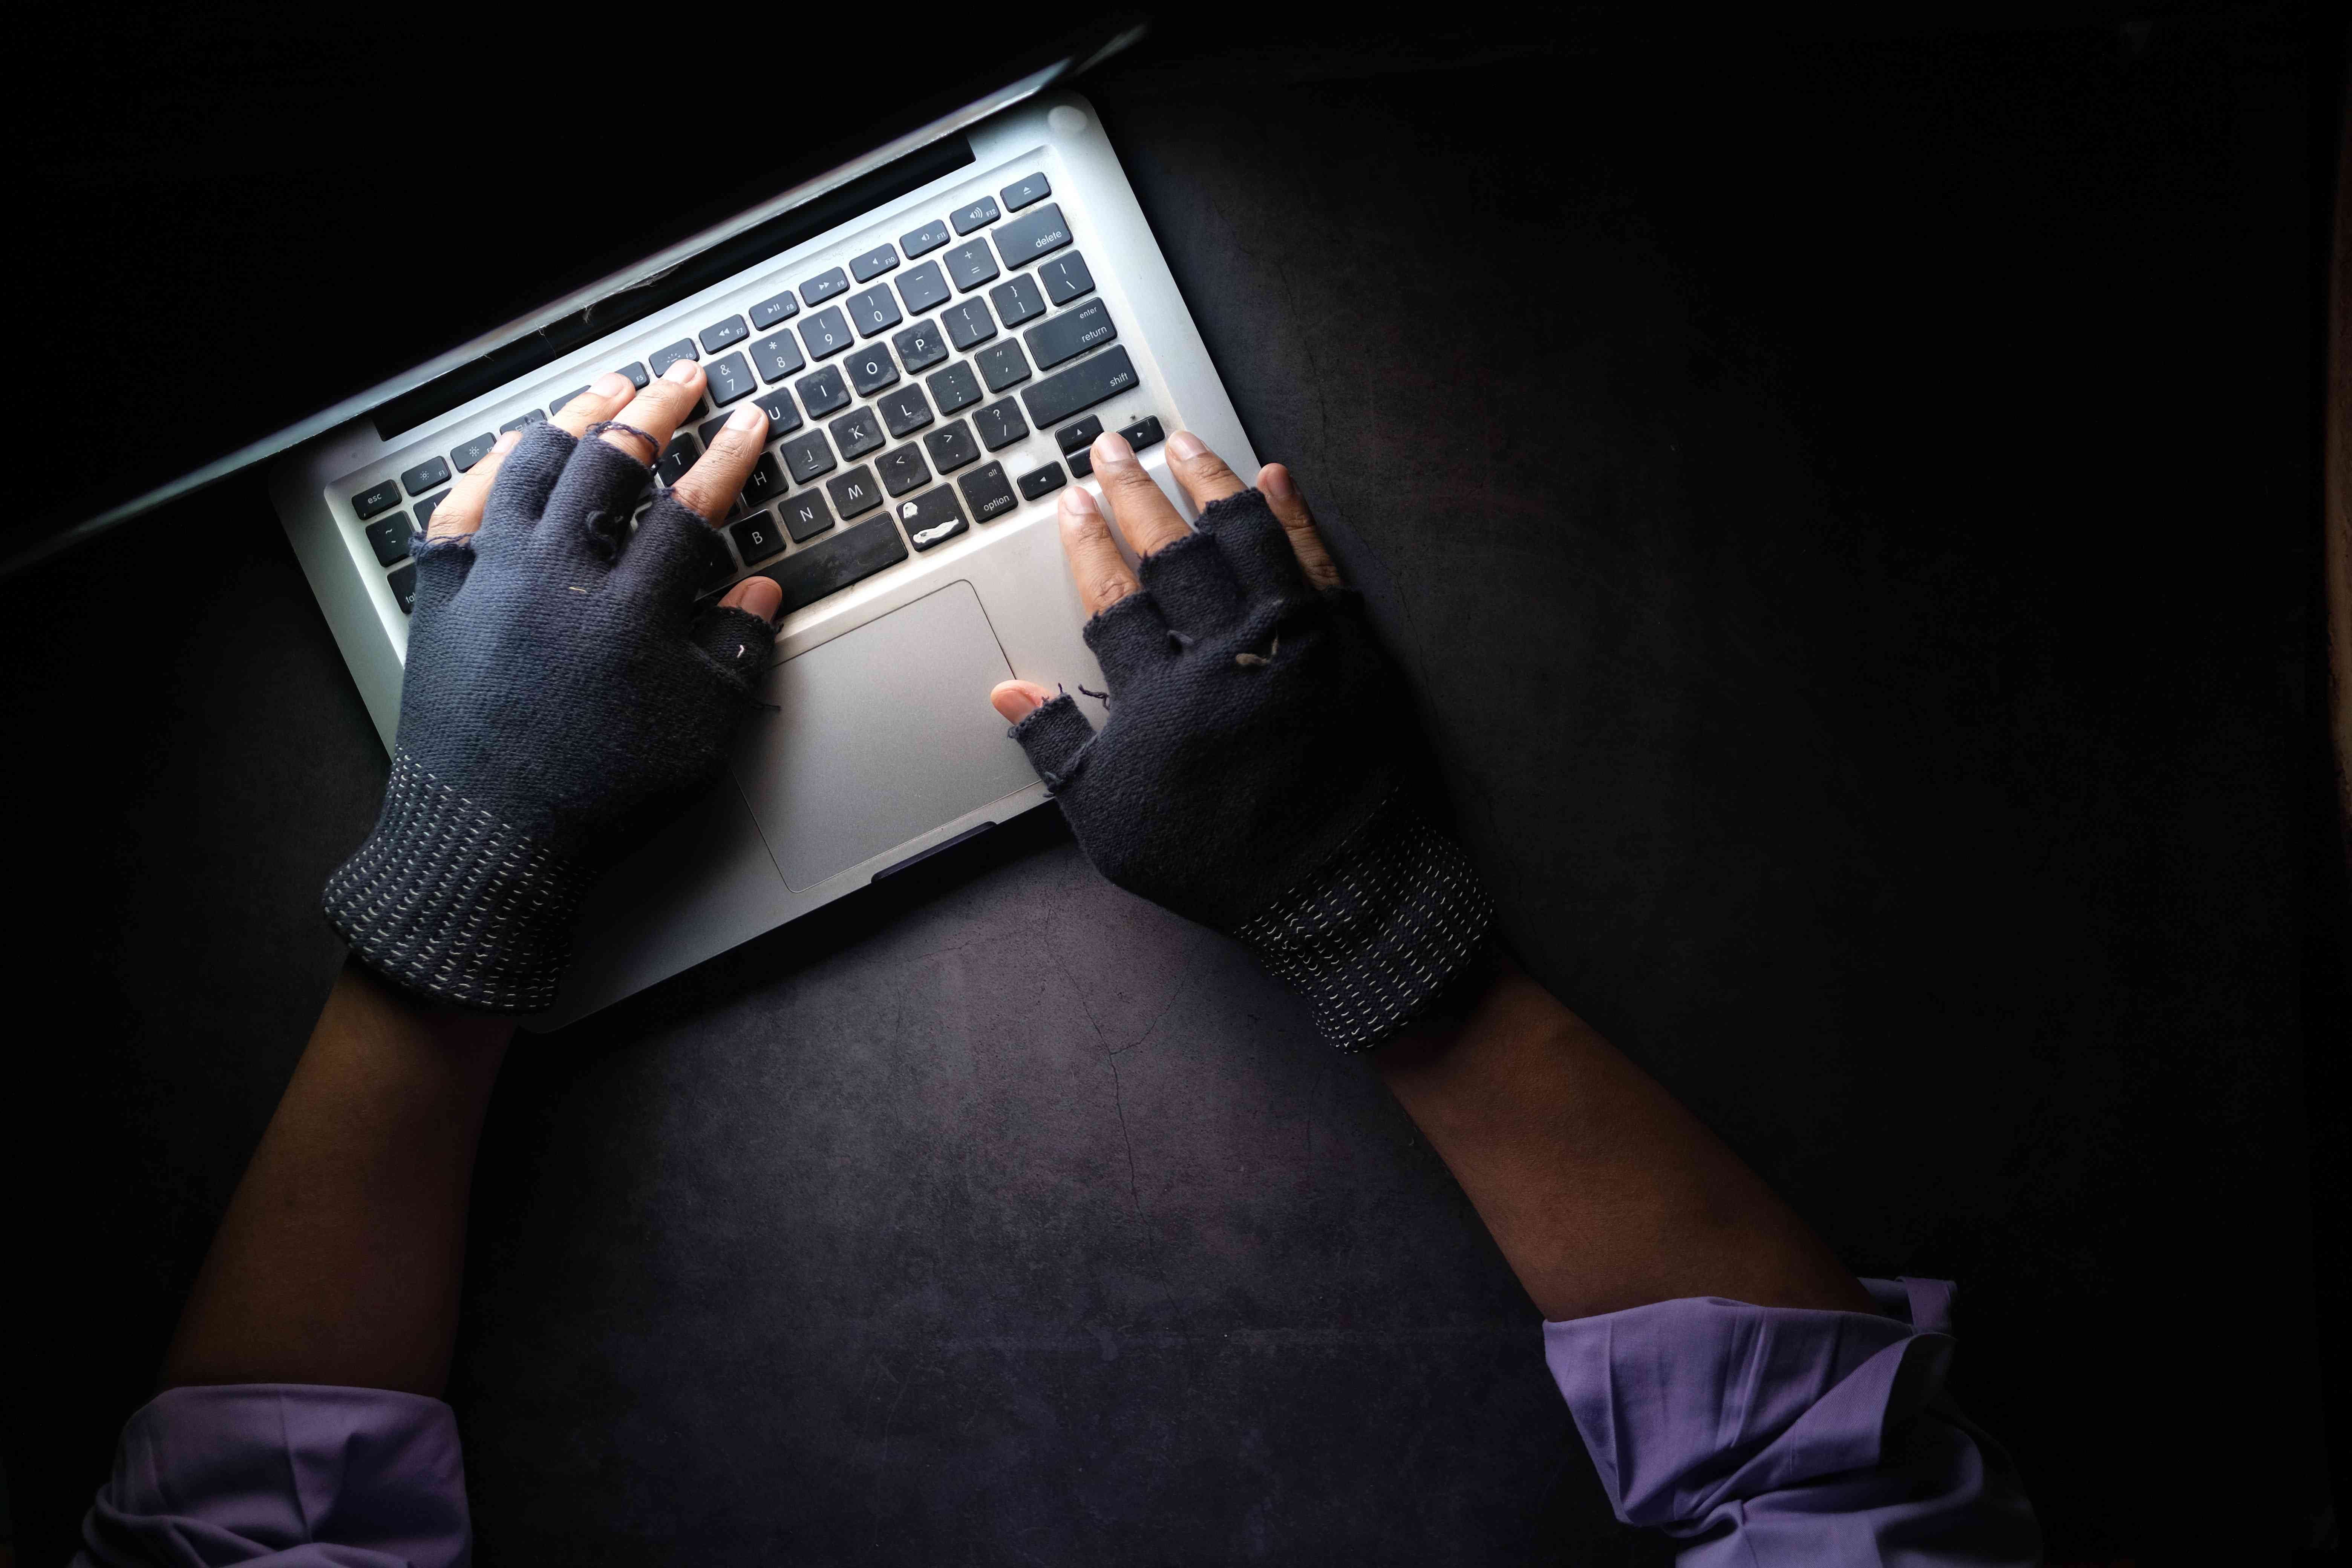 View from above of someone with fingerless gloves typing on a laptop to indicate an internet scammer.